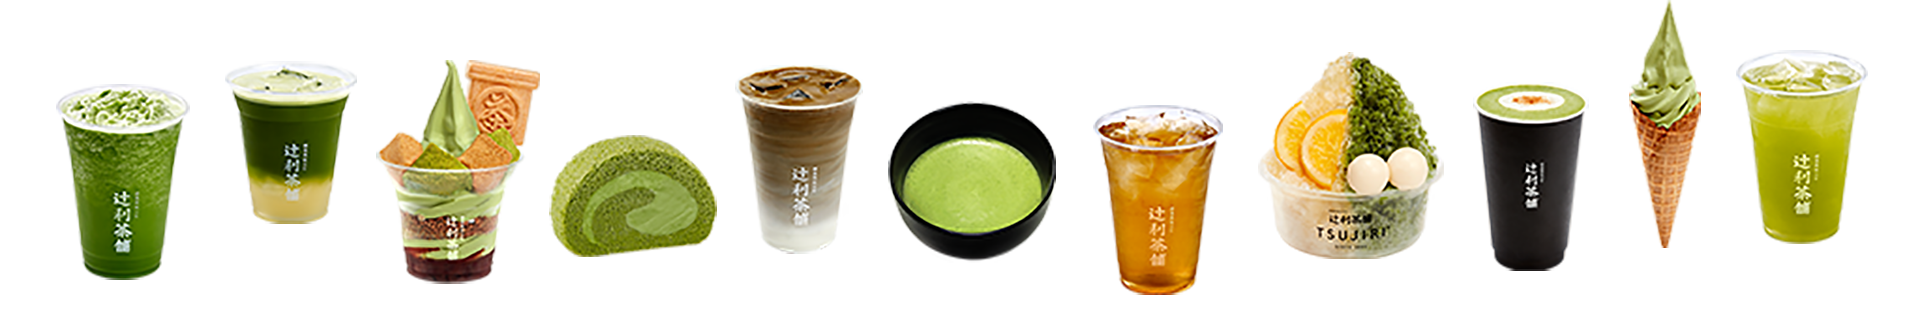 TSUJIRI Macha Products Tsujiri 抹茶產品